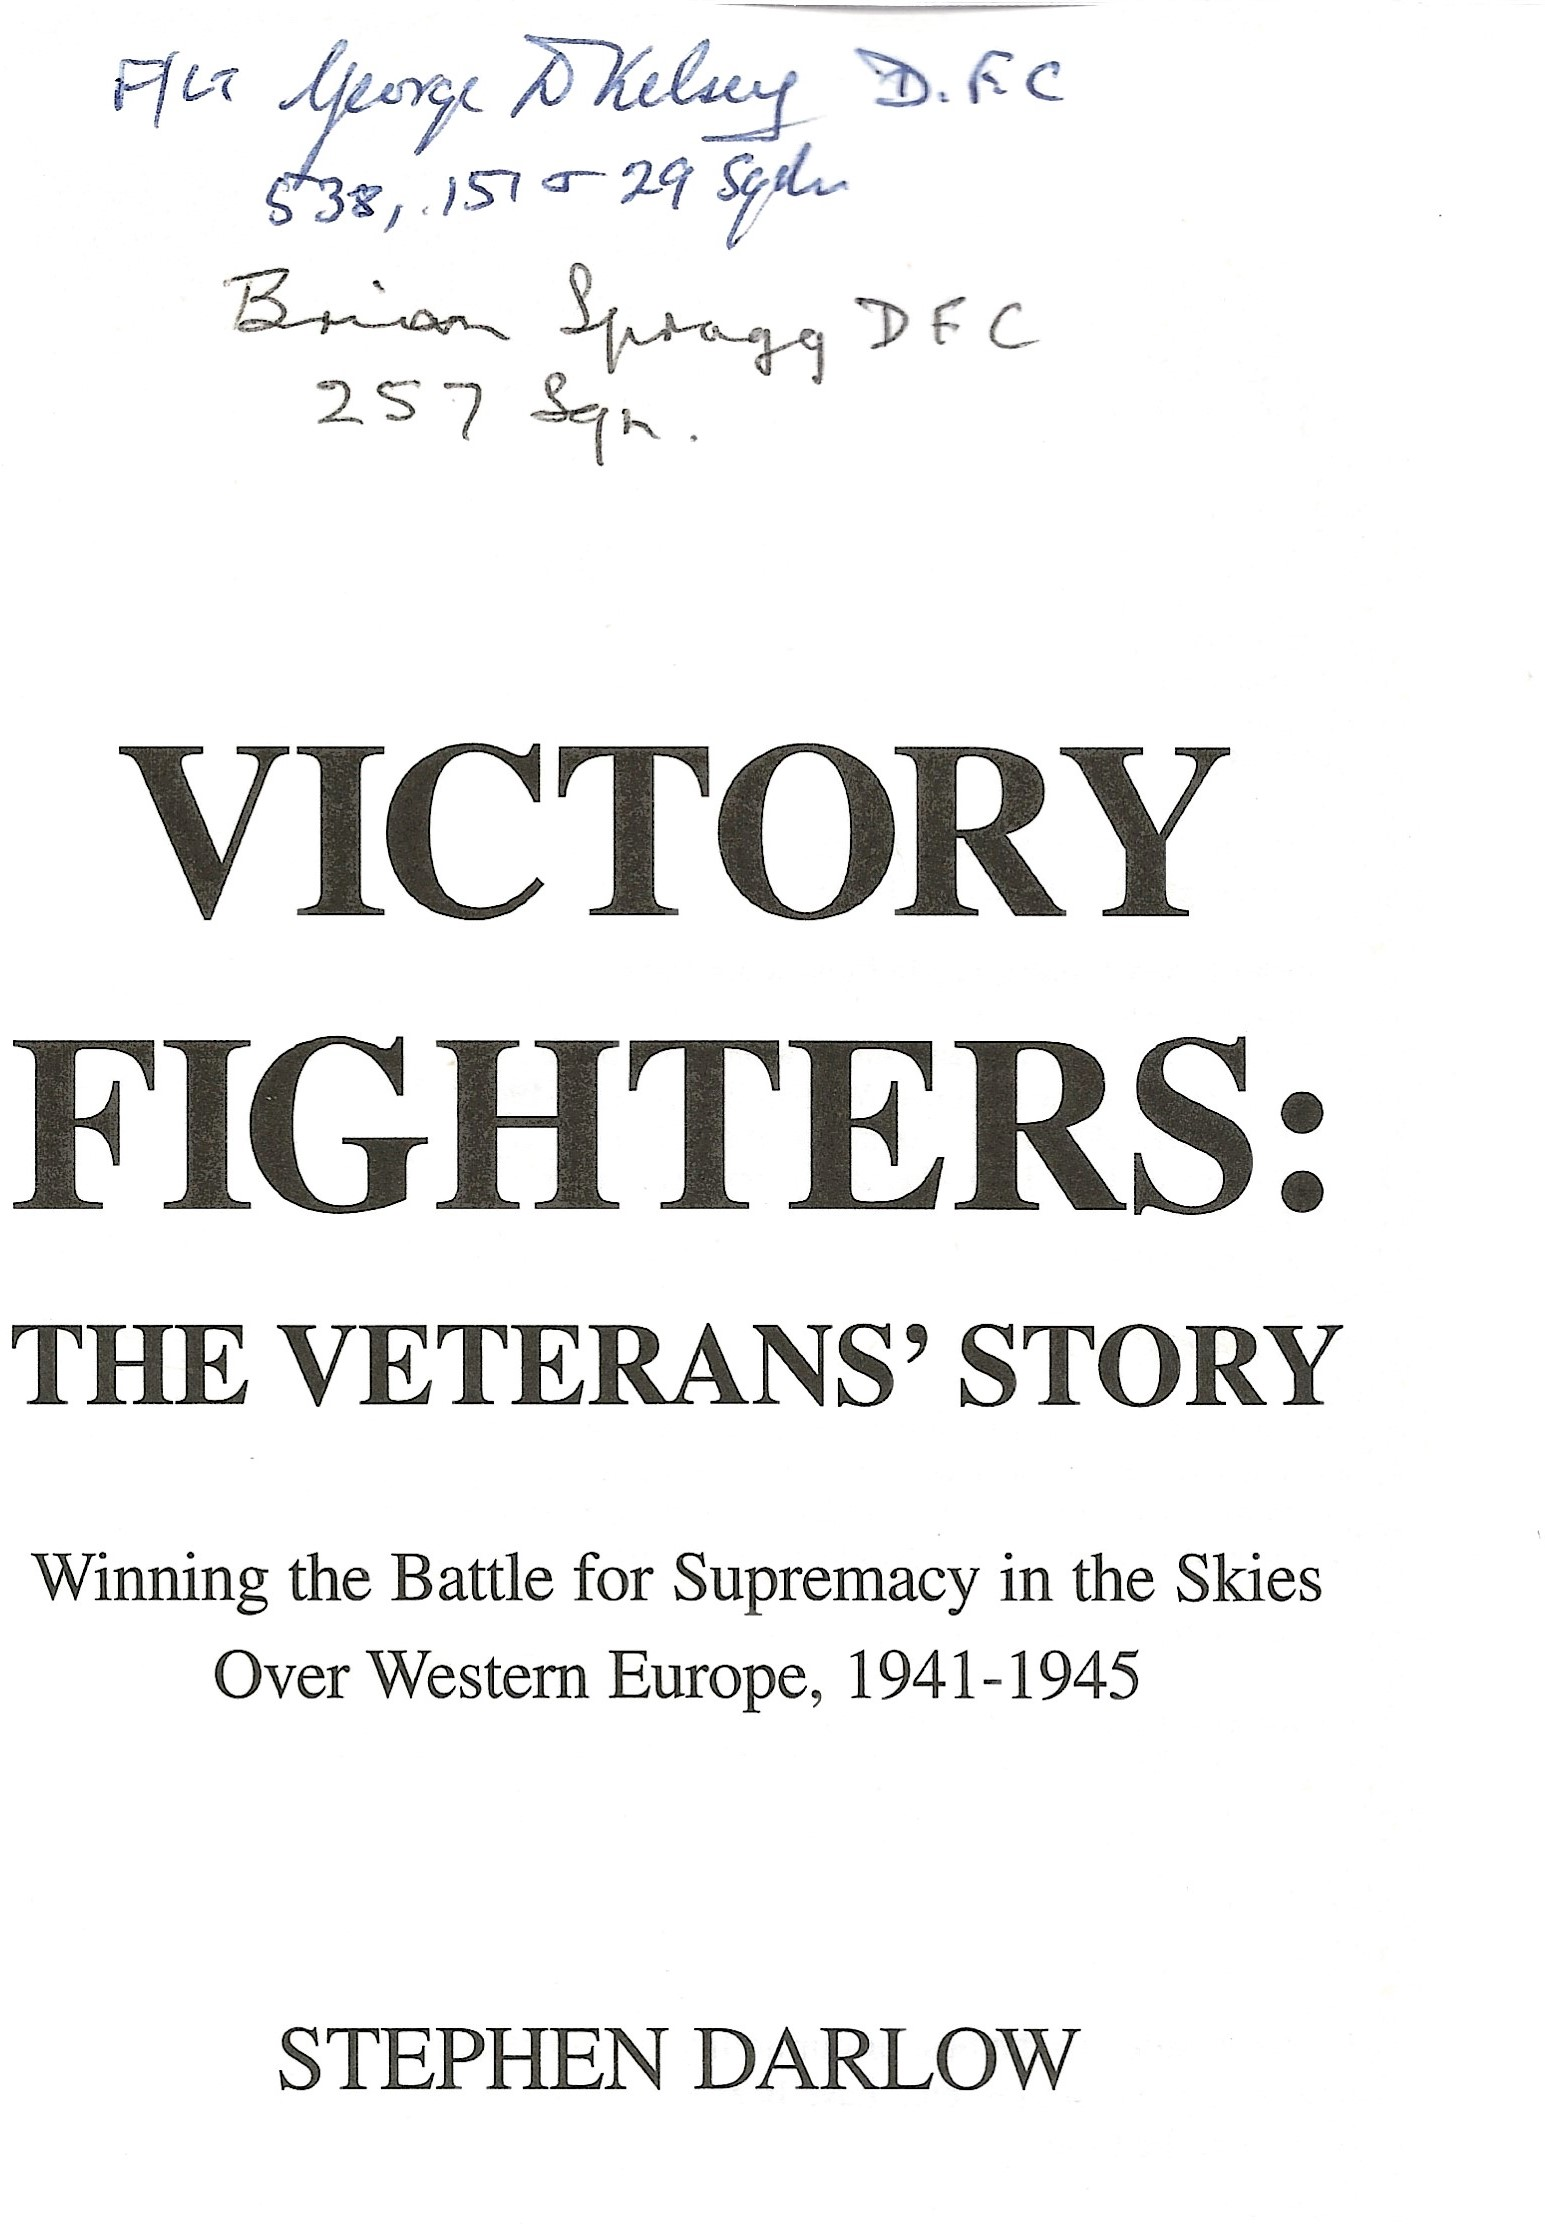 Stephen Darlow. Victory Fighters: The Veterans Story. Winning the battle for supremacy in the - Image 2 of 4